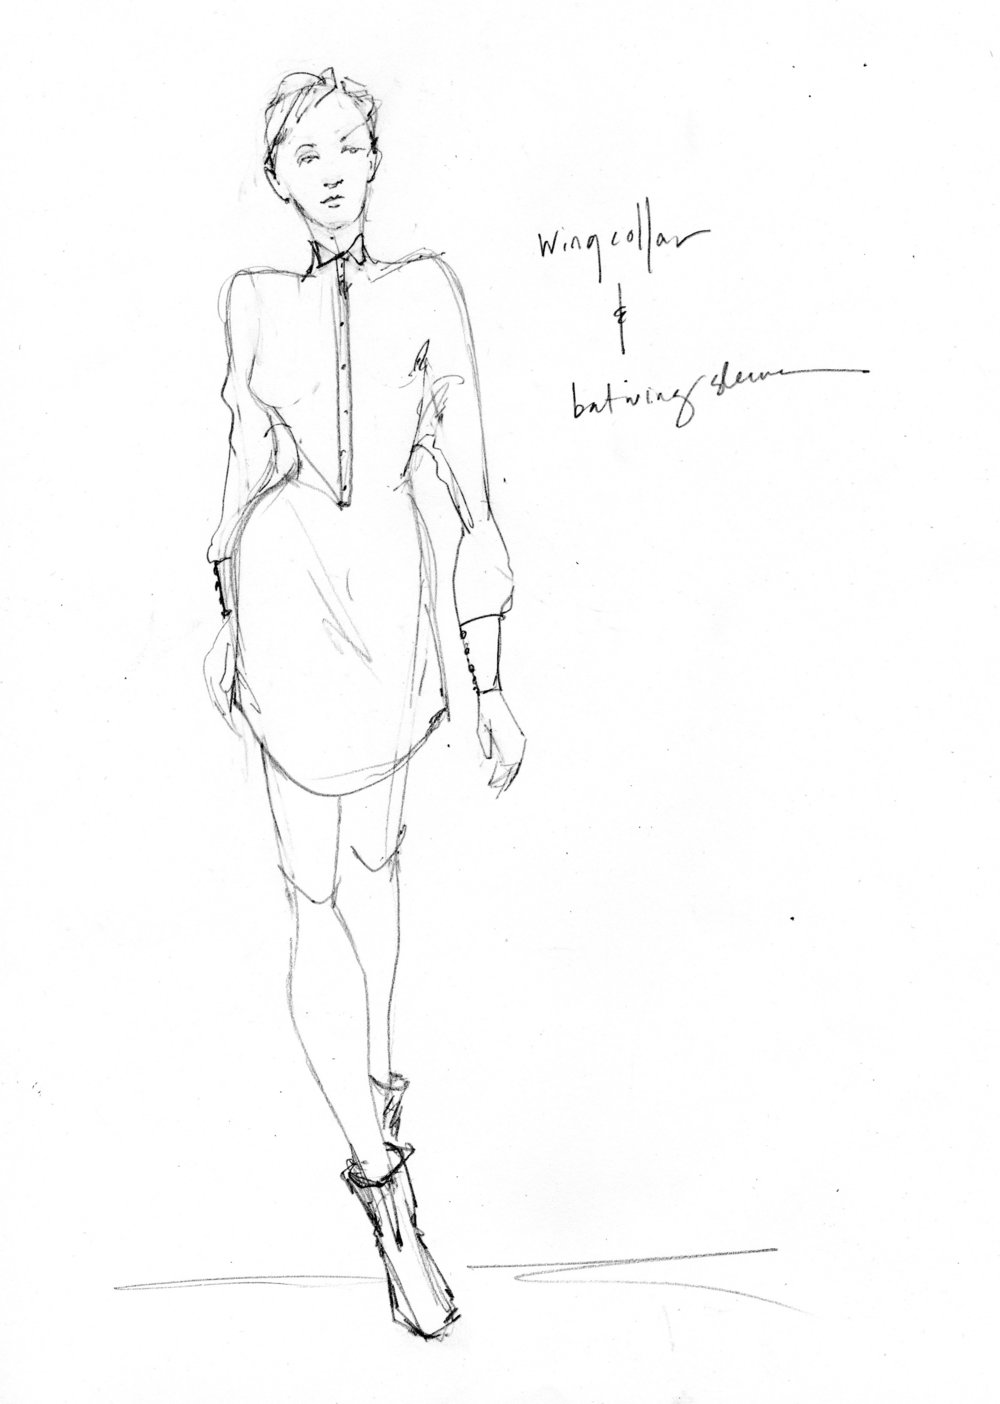 Rough sketch examining the use of a dolman sleeve and wing collar as a link from pattern making to story